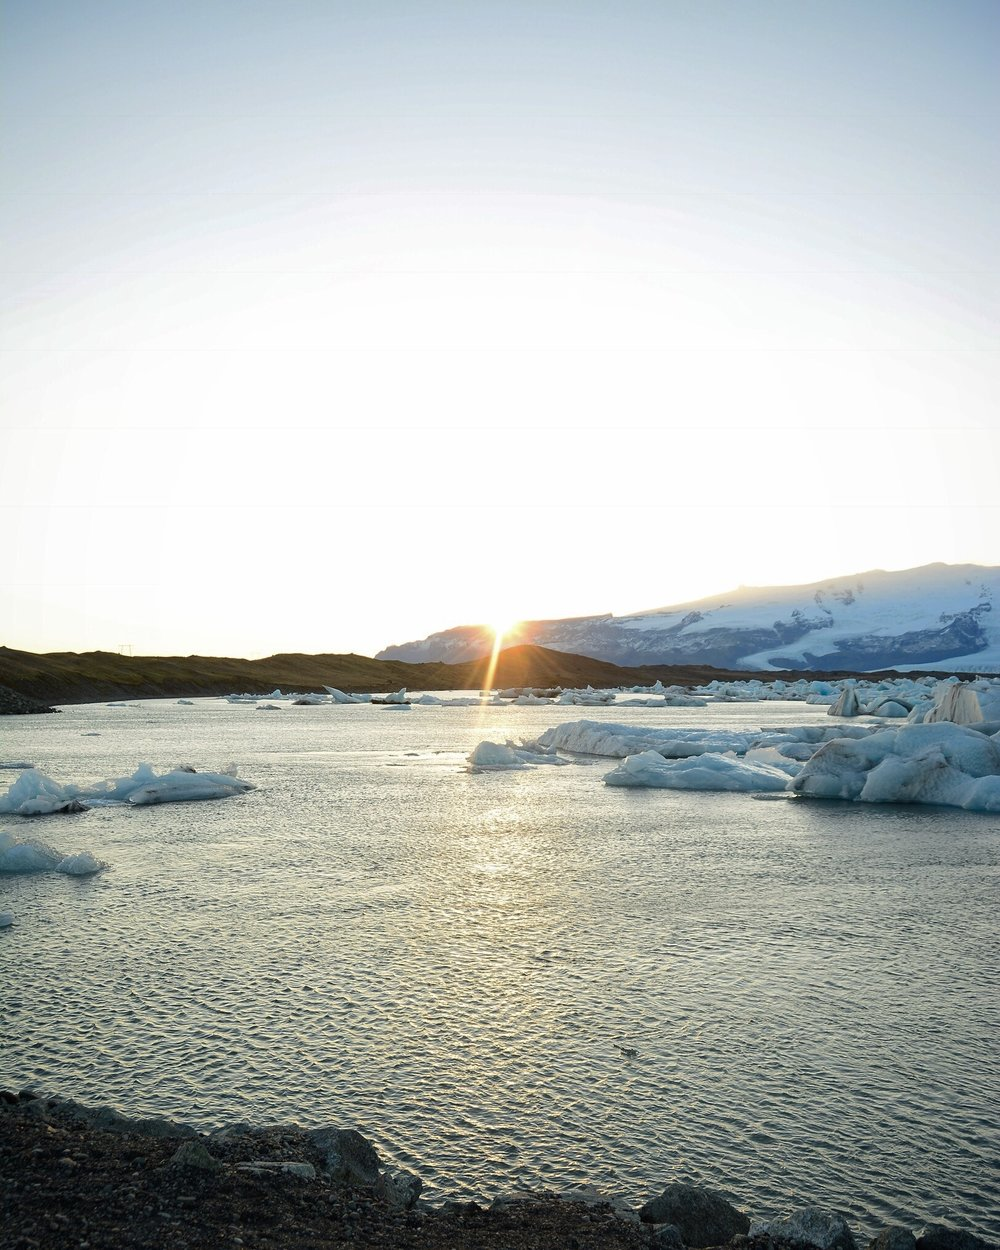 Sunset at Jokulsarlon Lagoon, Iceland